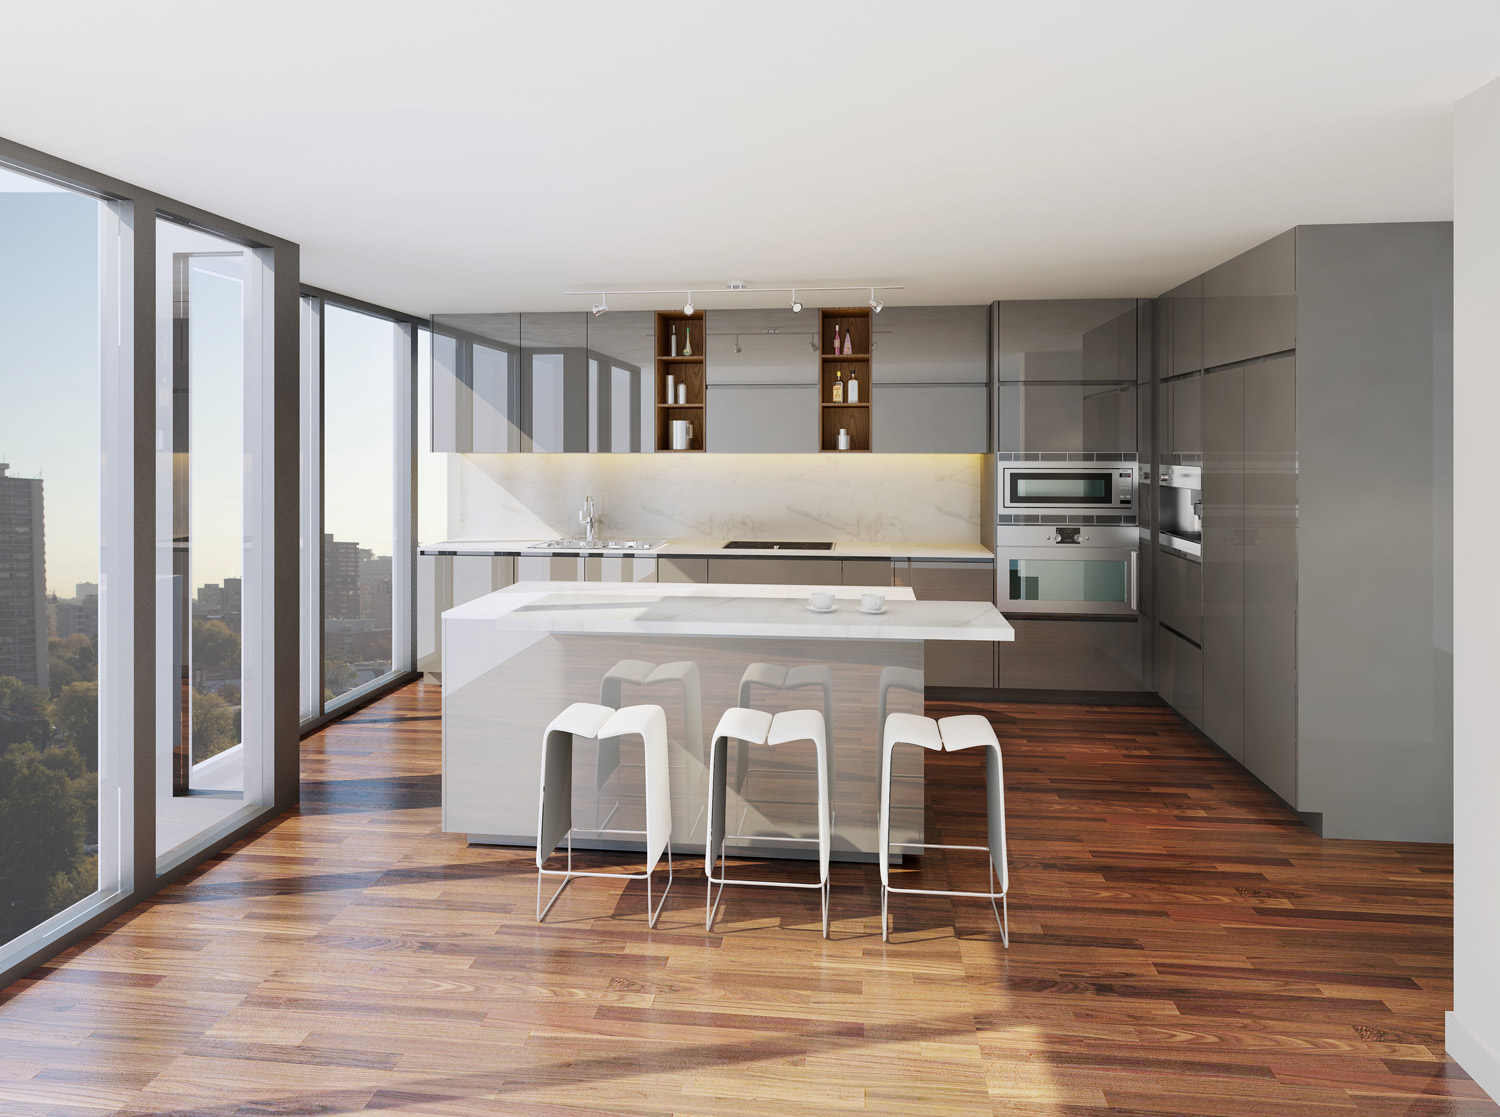 Perry_Gallery-DA1109_Perry_04_Kitchen_F2